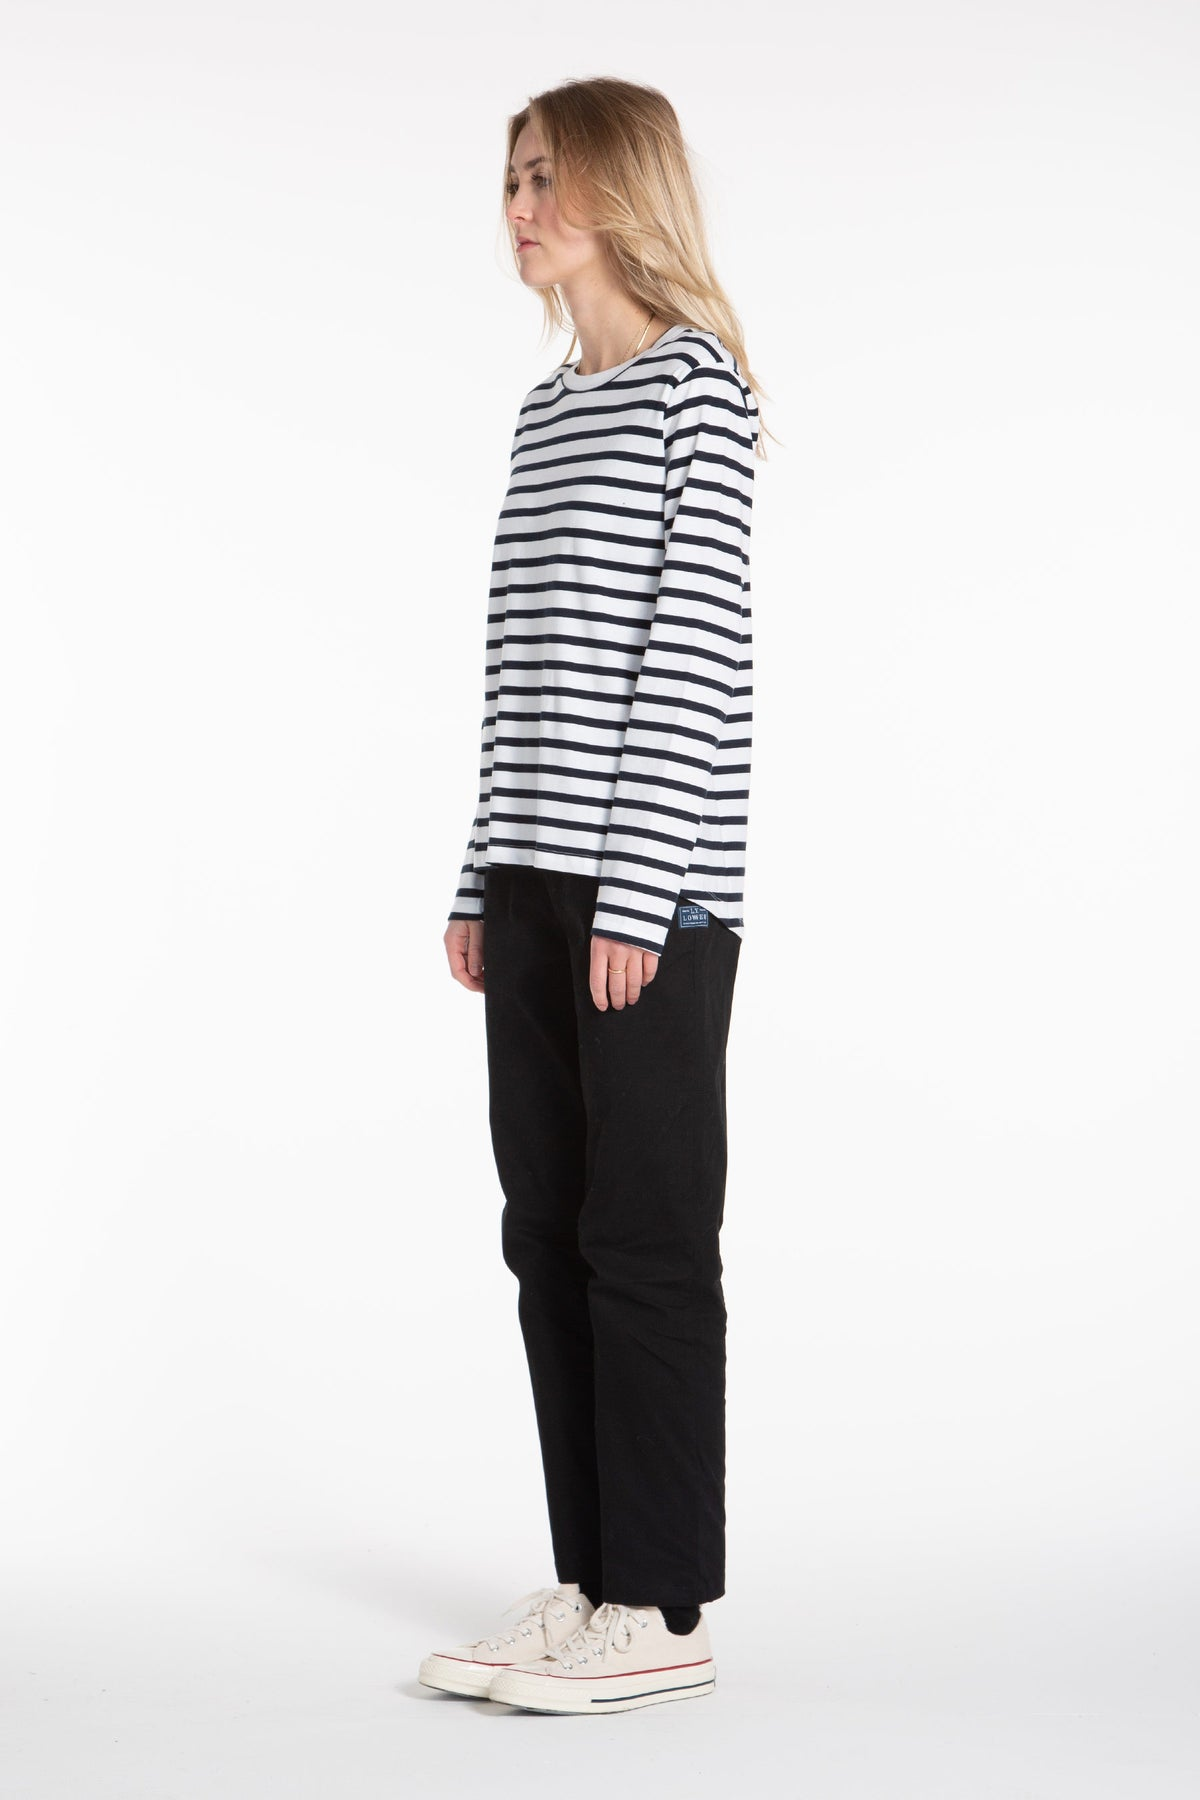 Organic Scoop LS Tee - Navy/Stripe